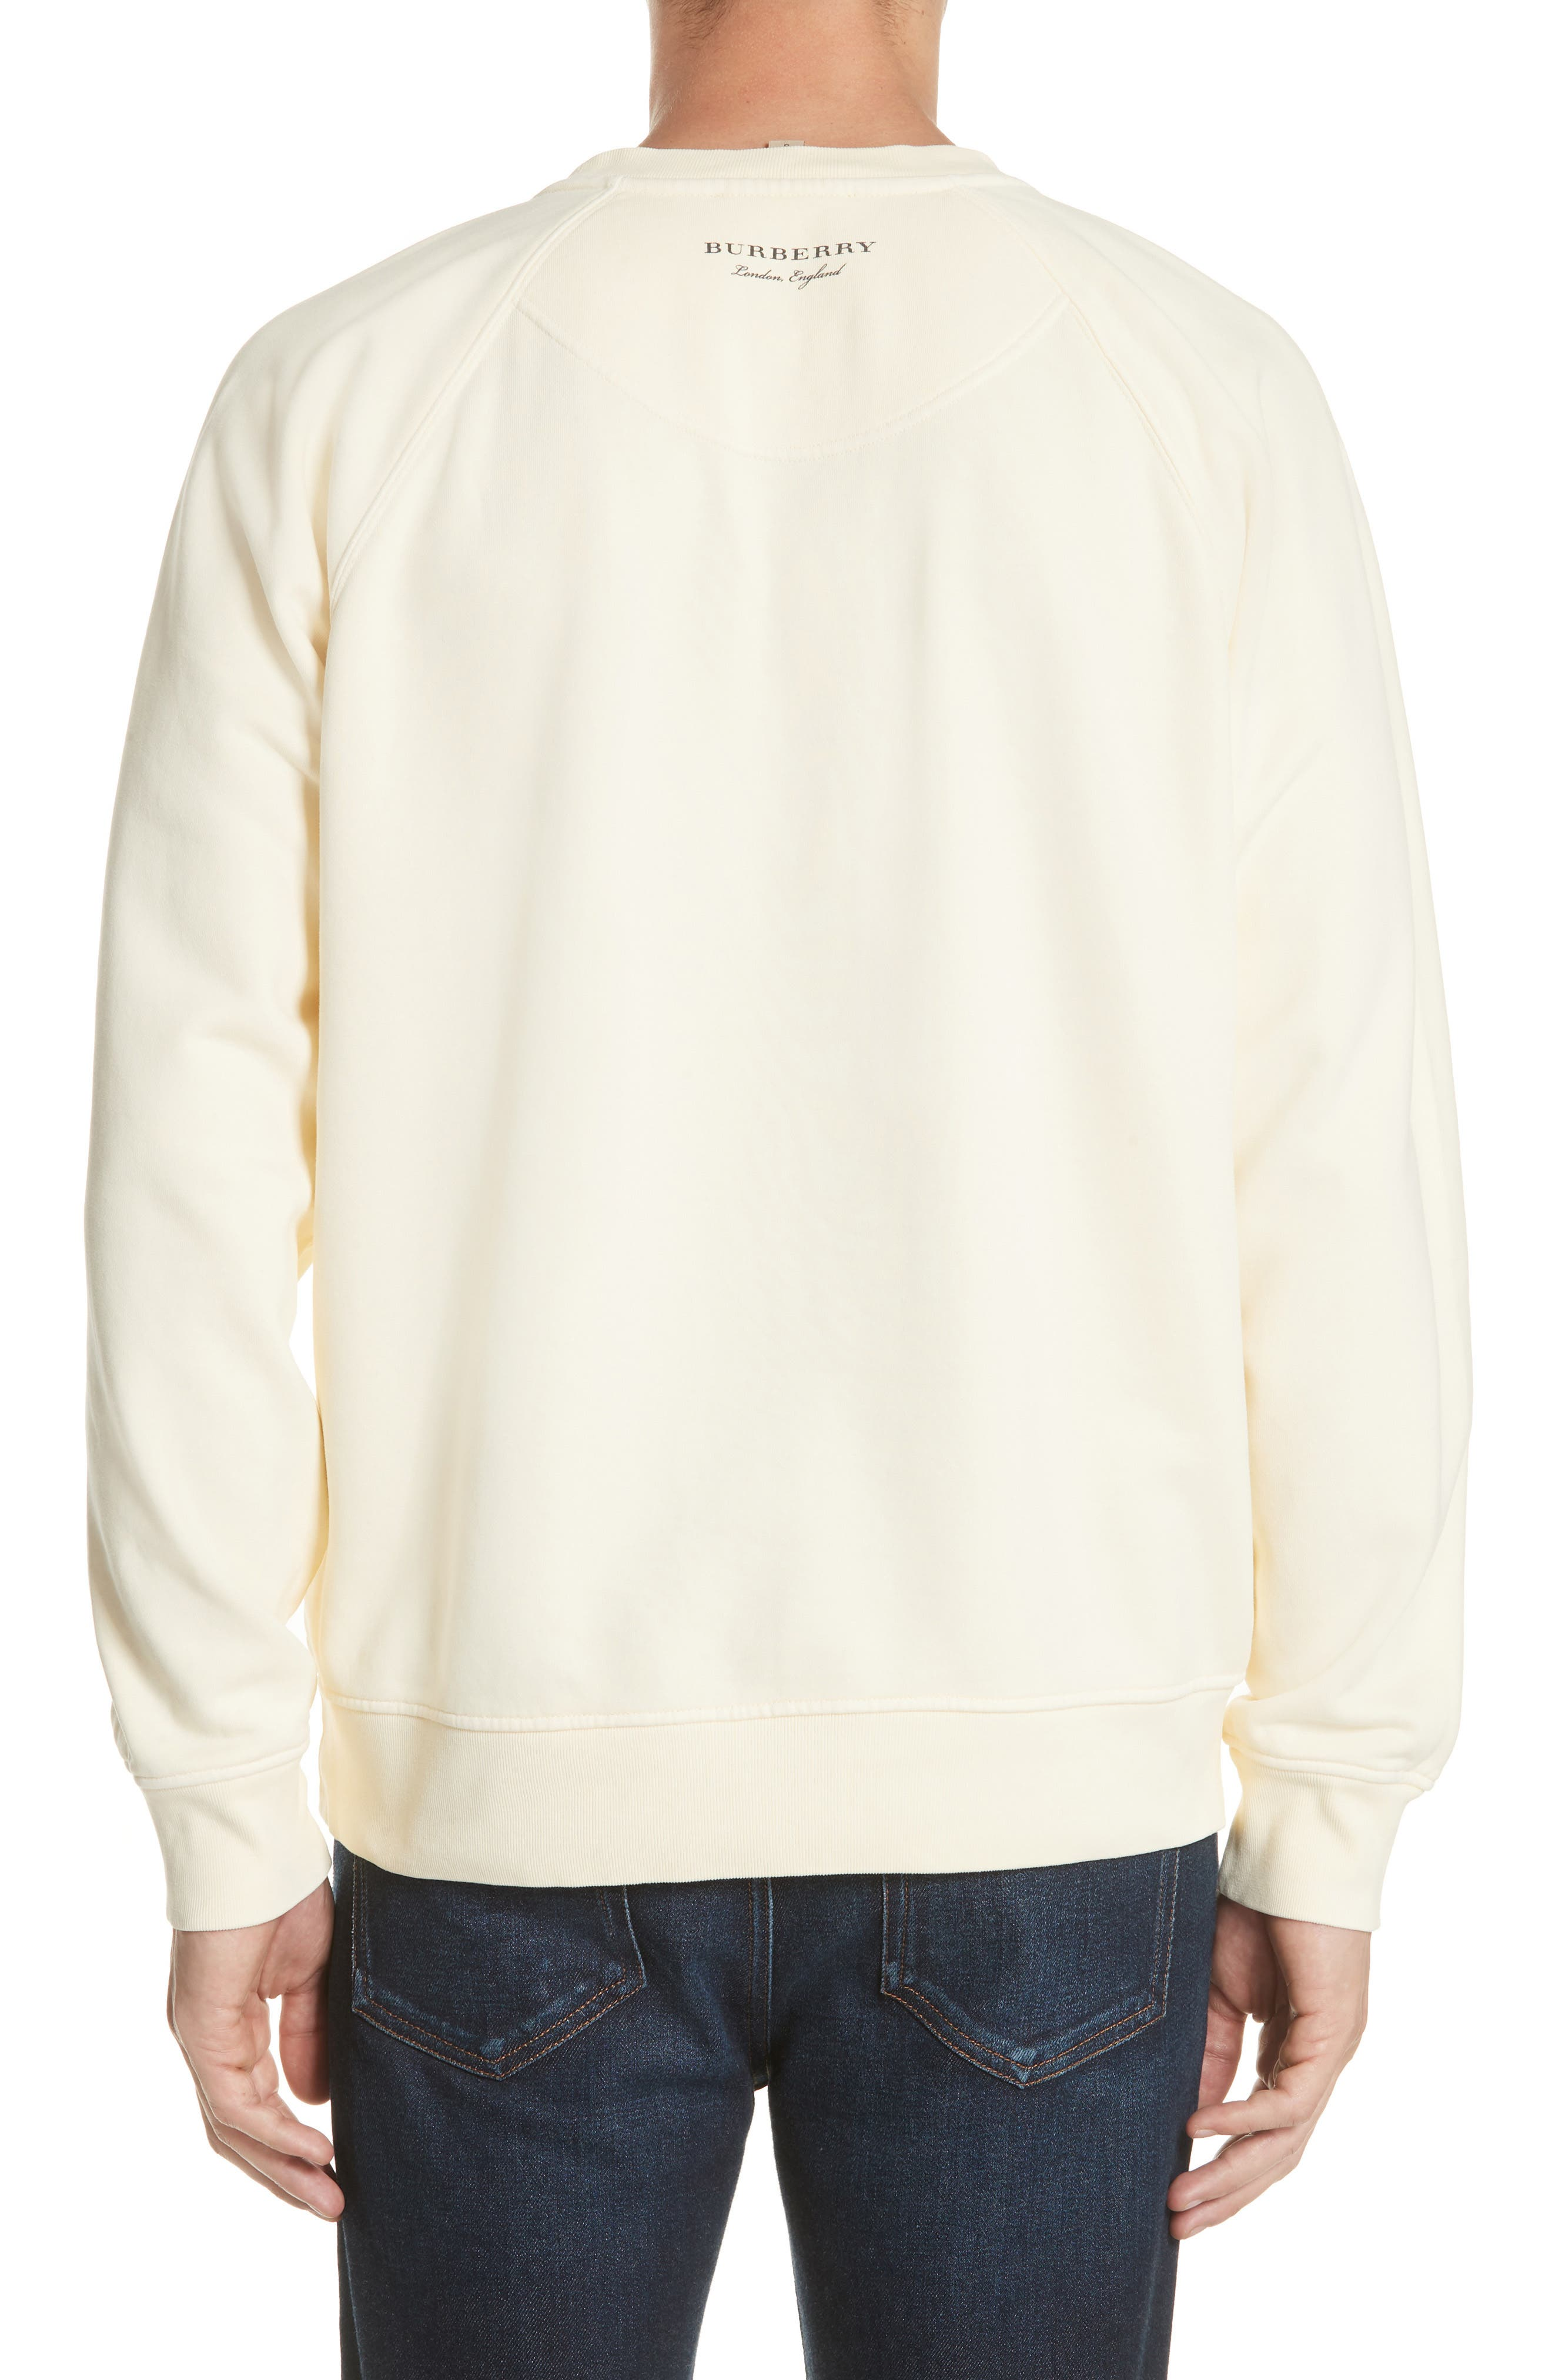 Earlford Graphic Sweatshirt,                             Alternate thumbnail 2, color,                             Pale Yellow